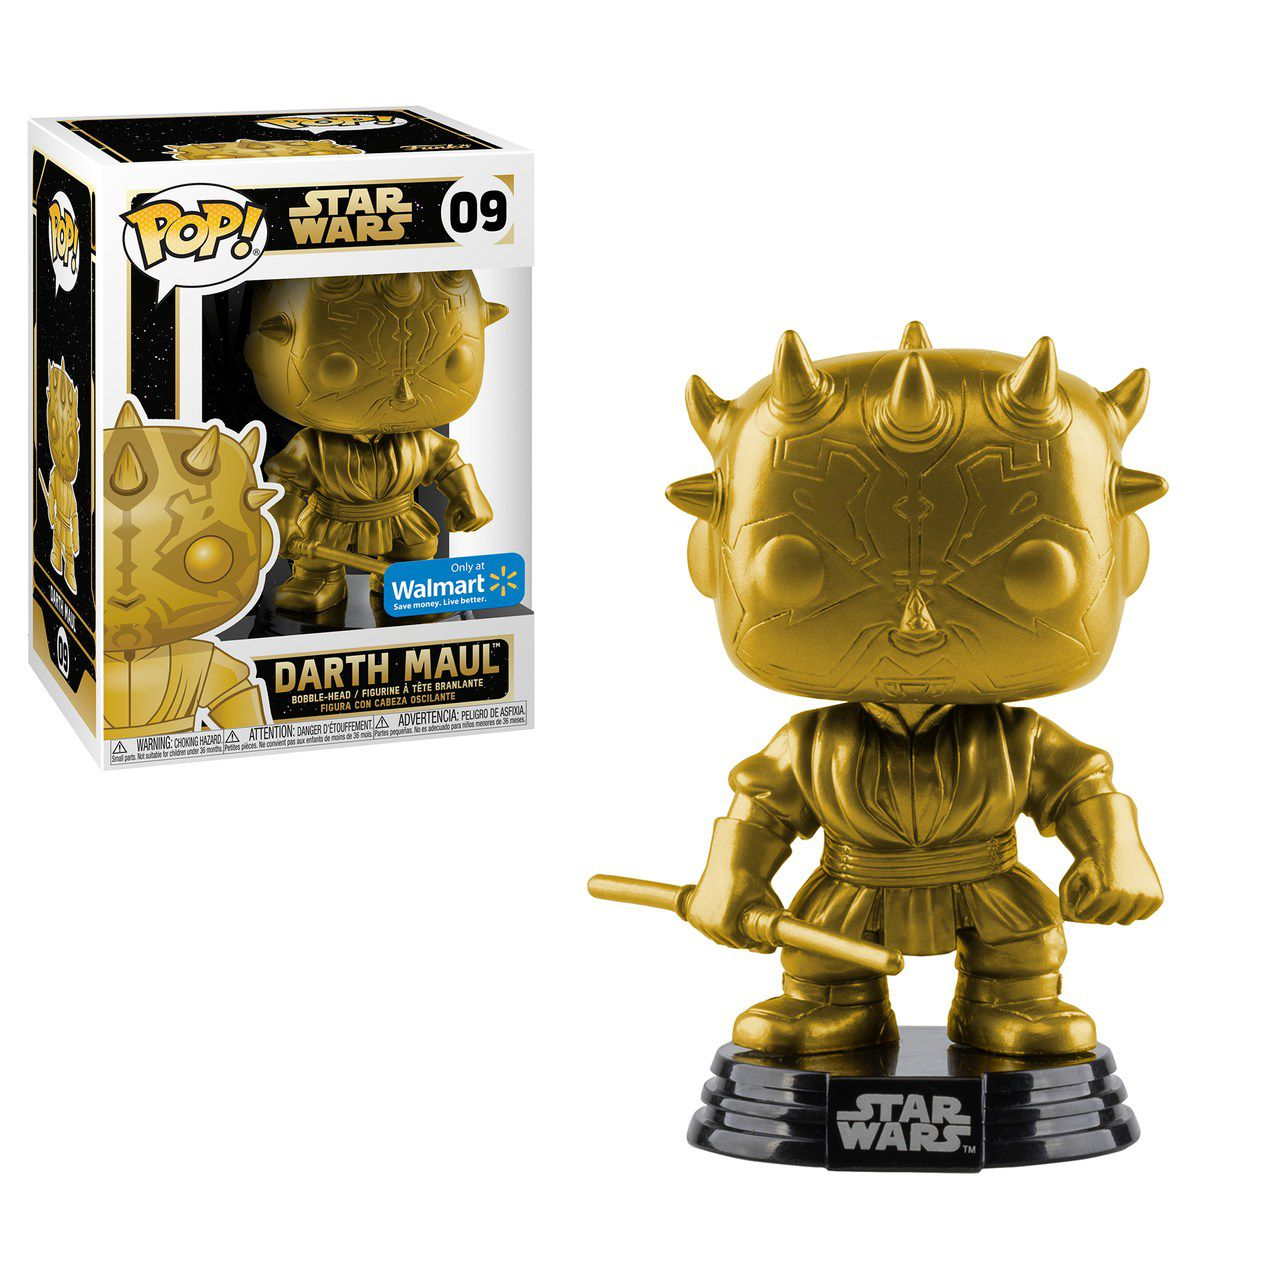 Pop! Darth Maul: Star Wars (Gold Metallic) Exclusivo #09 - Funko (Apenas Venda Online)